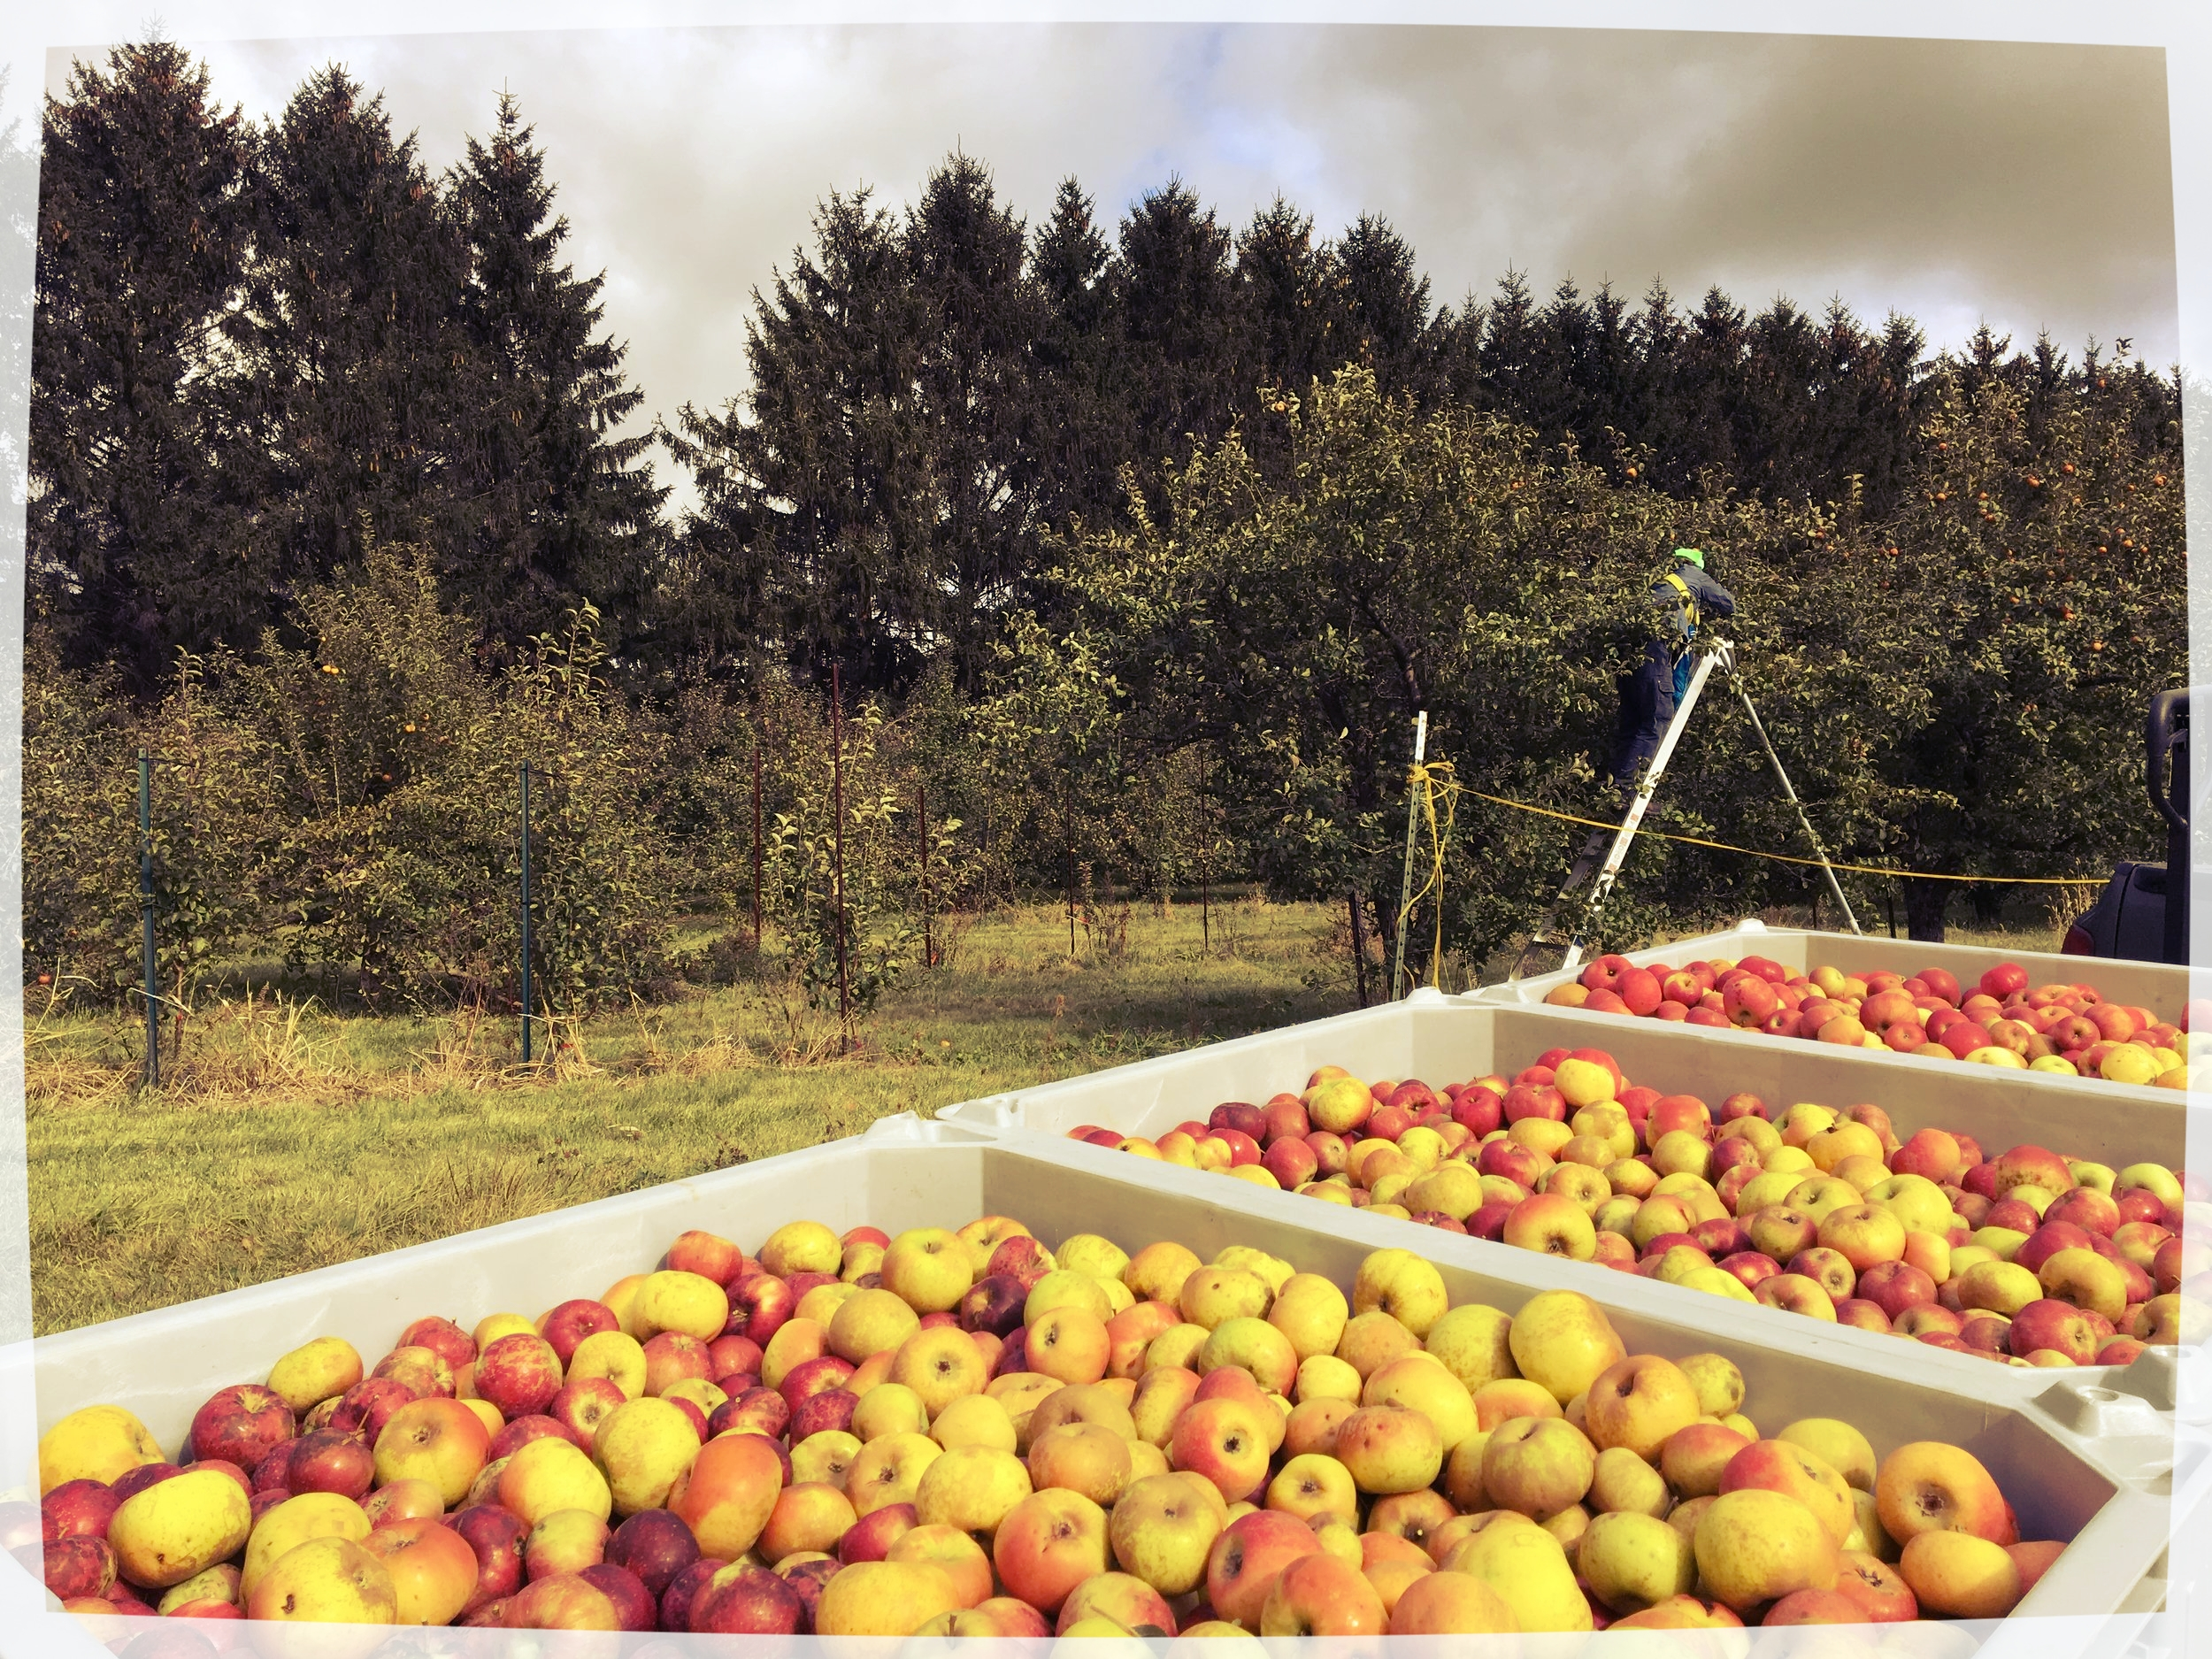 Above:  Nearly full bins of apples